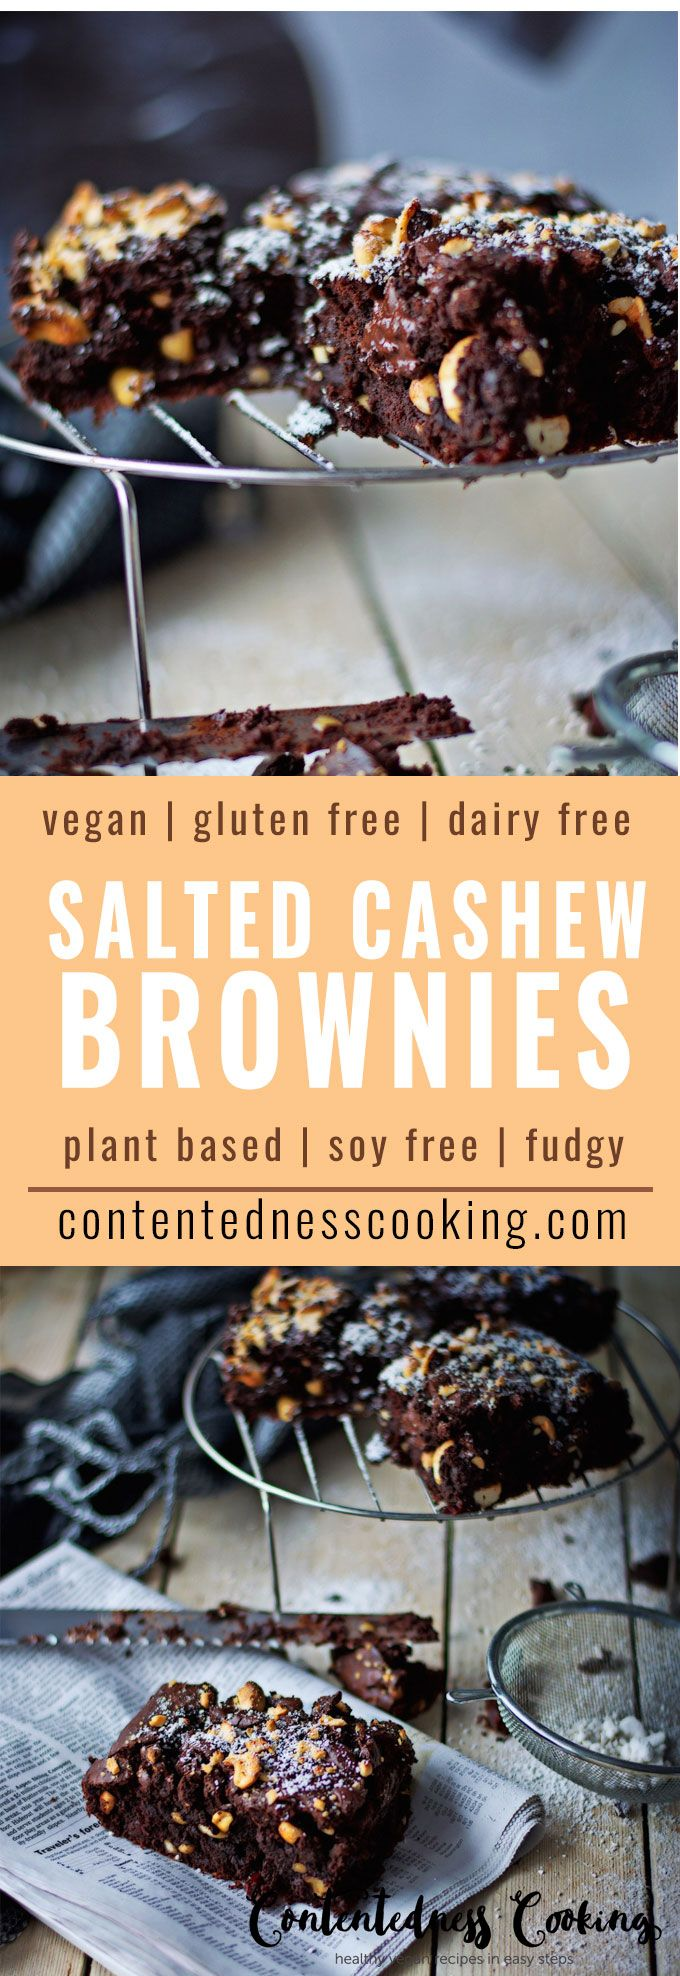 Mind-blowing combination of flavors in this Salted-Cashew Brownies with Orange and Cranberry twists. So good, vegan and gluten free. #plantbased #vegan #dairyfree #soyfree